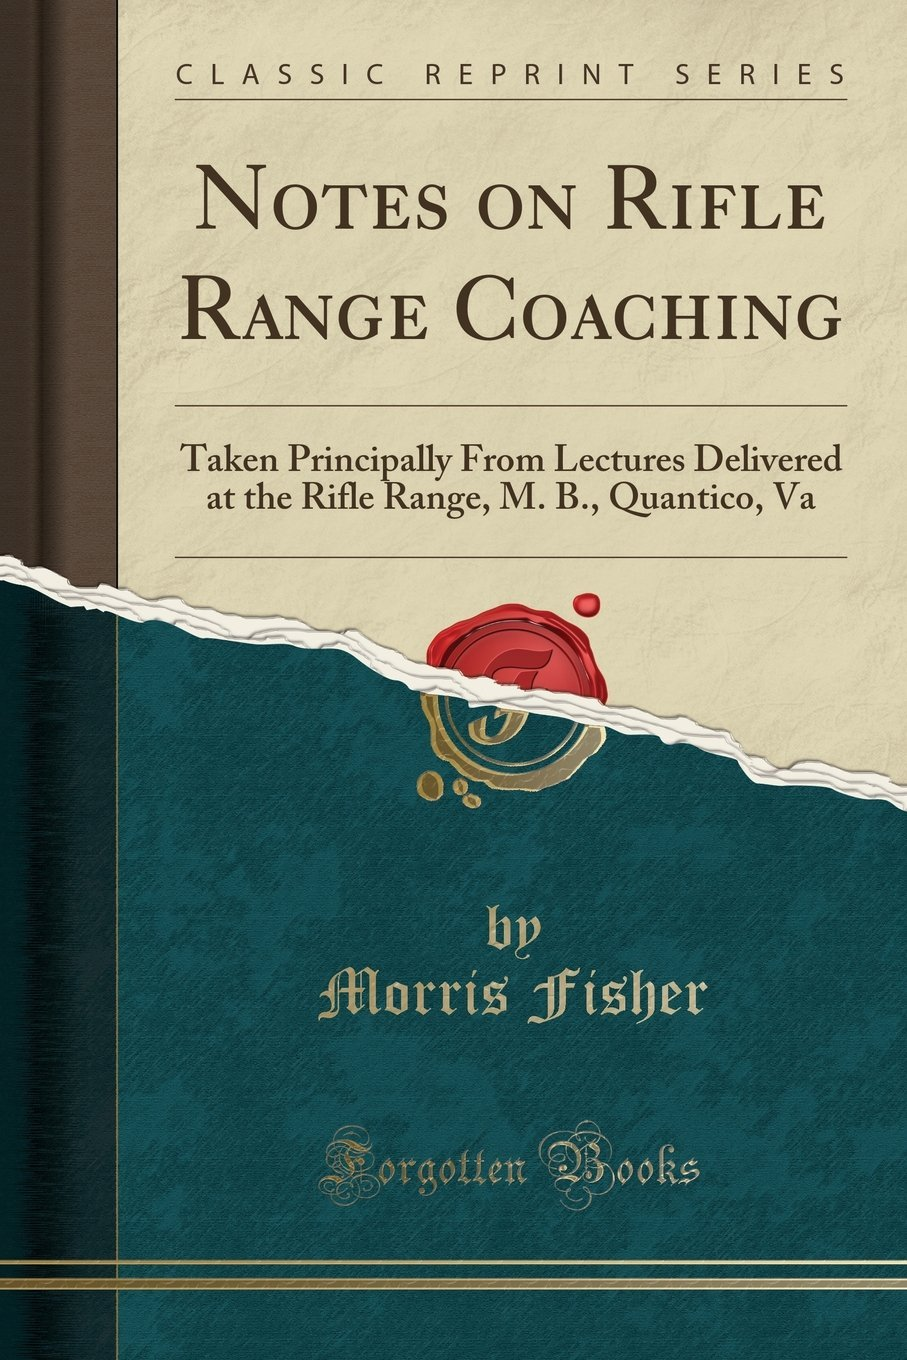 Download Notes on Rifle Range Coaching: Taken Principally From Lectures Delivered at the Rifle Range, M. B., Quantico, Va (Classic Reprint) PDF